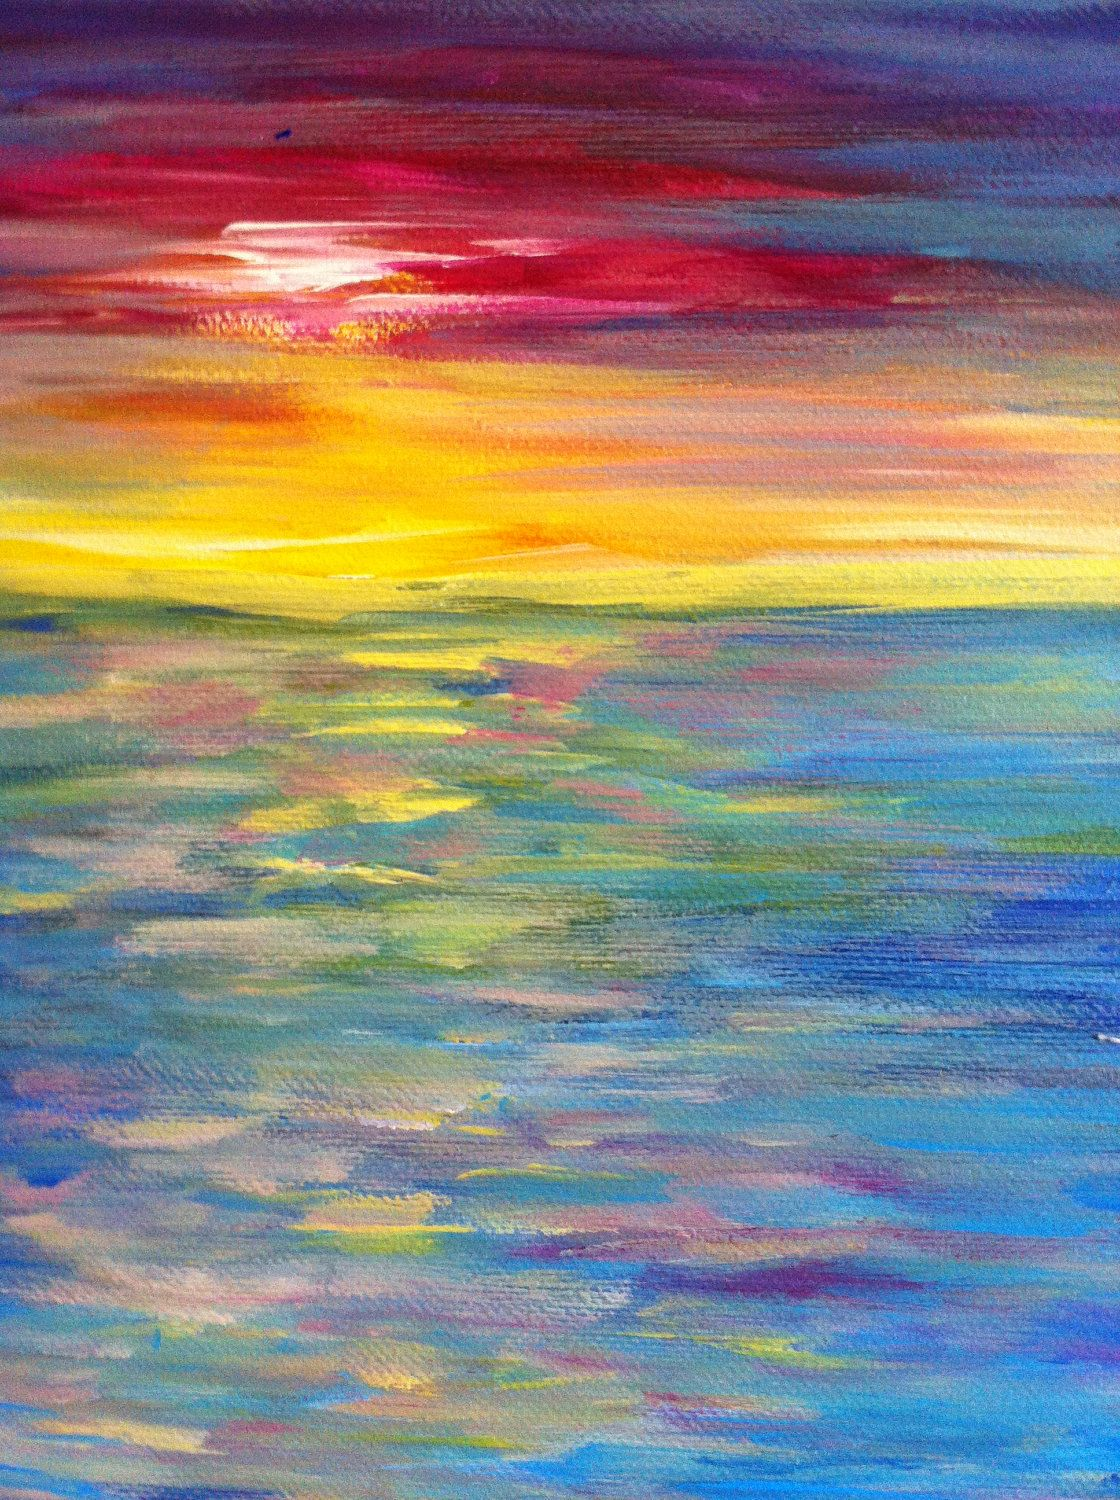 Pretty Painting Idea For Beginners Sunset Painting With Warm Sky